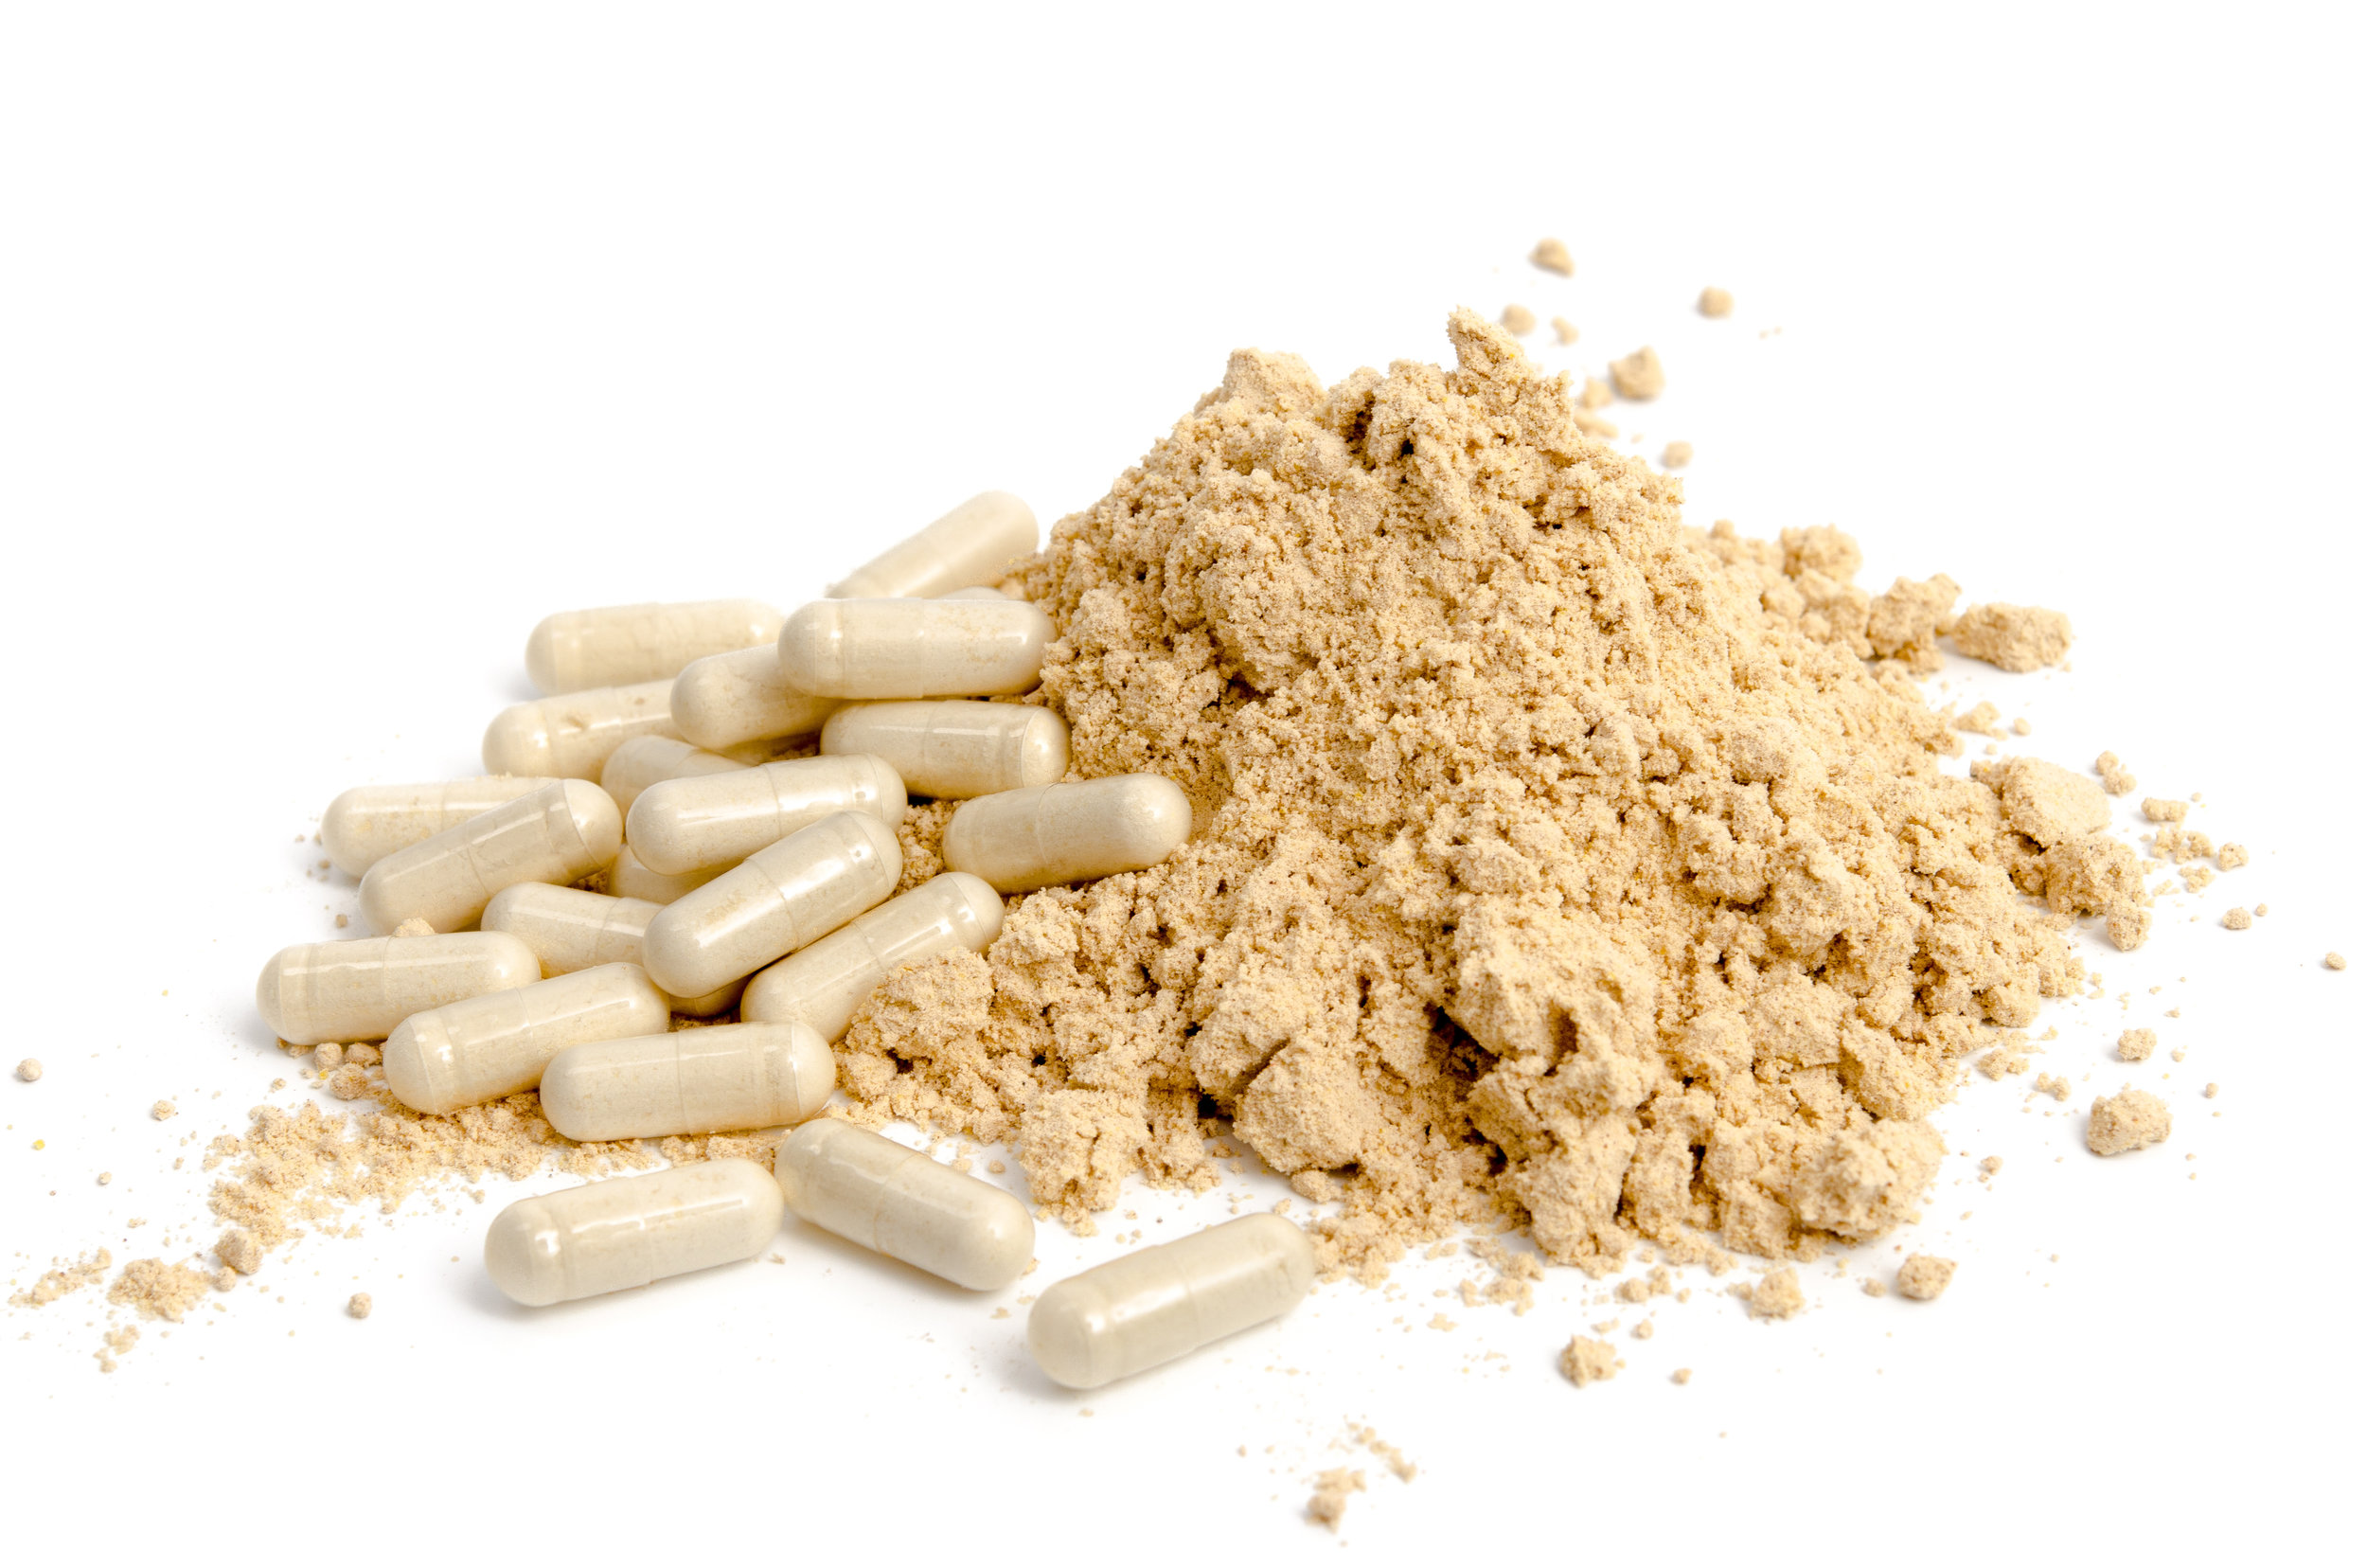 Pile of tan powder and powder in nutraceutical capsules